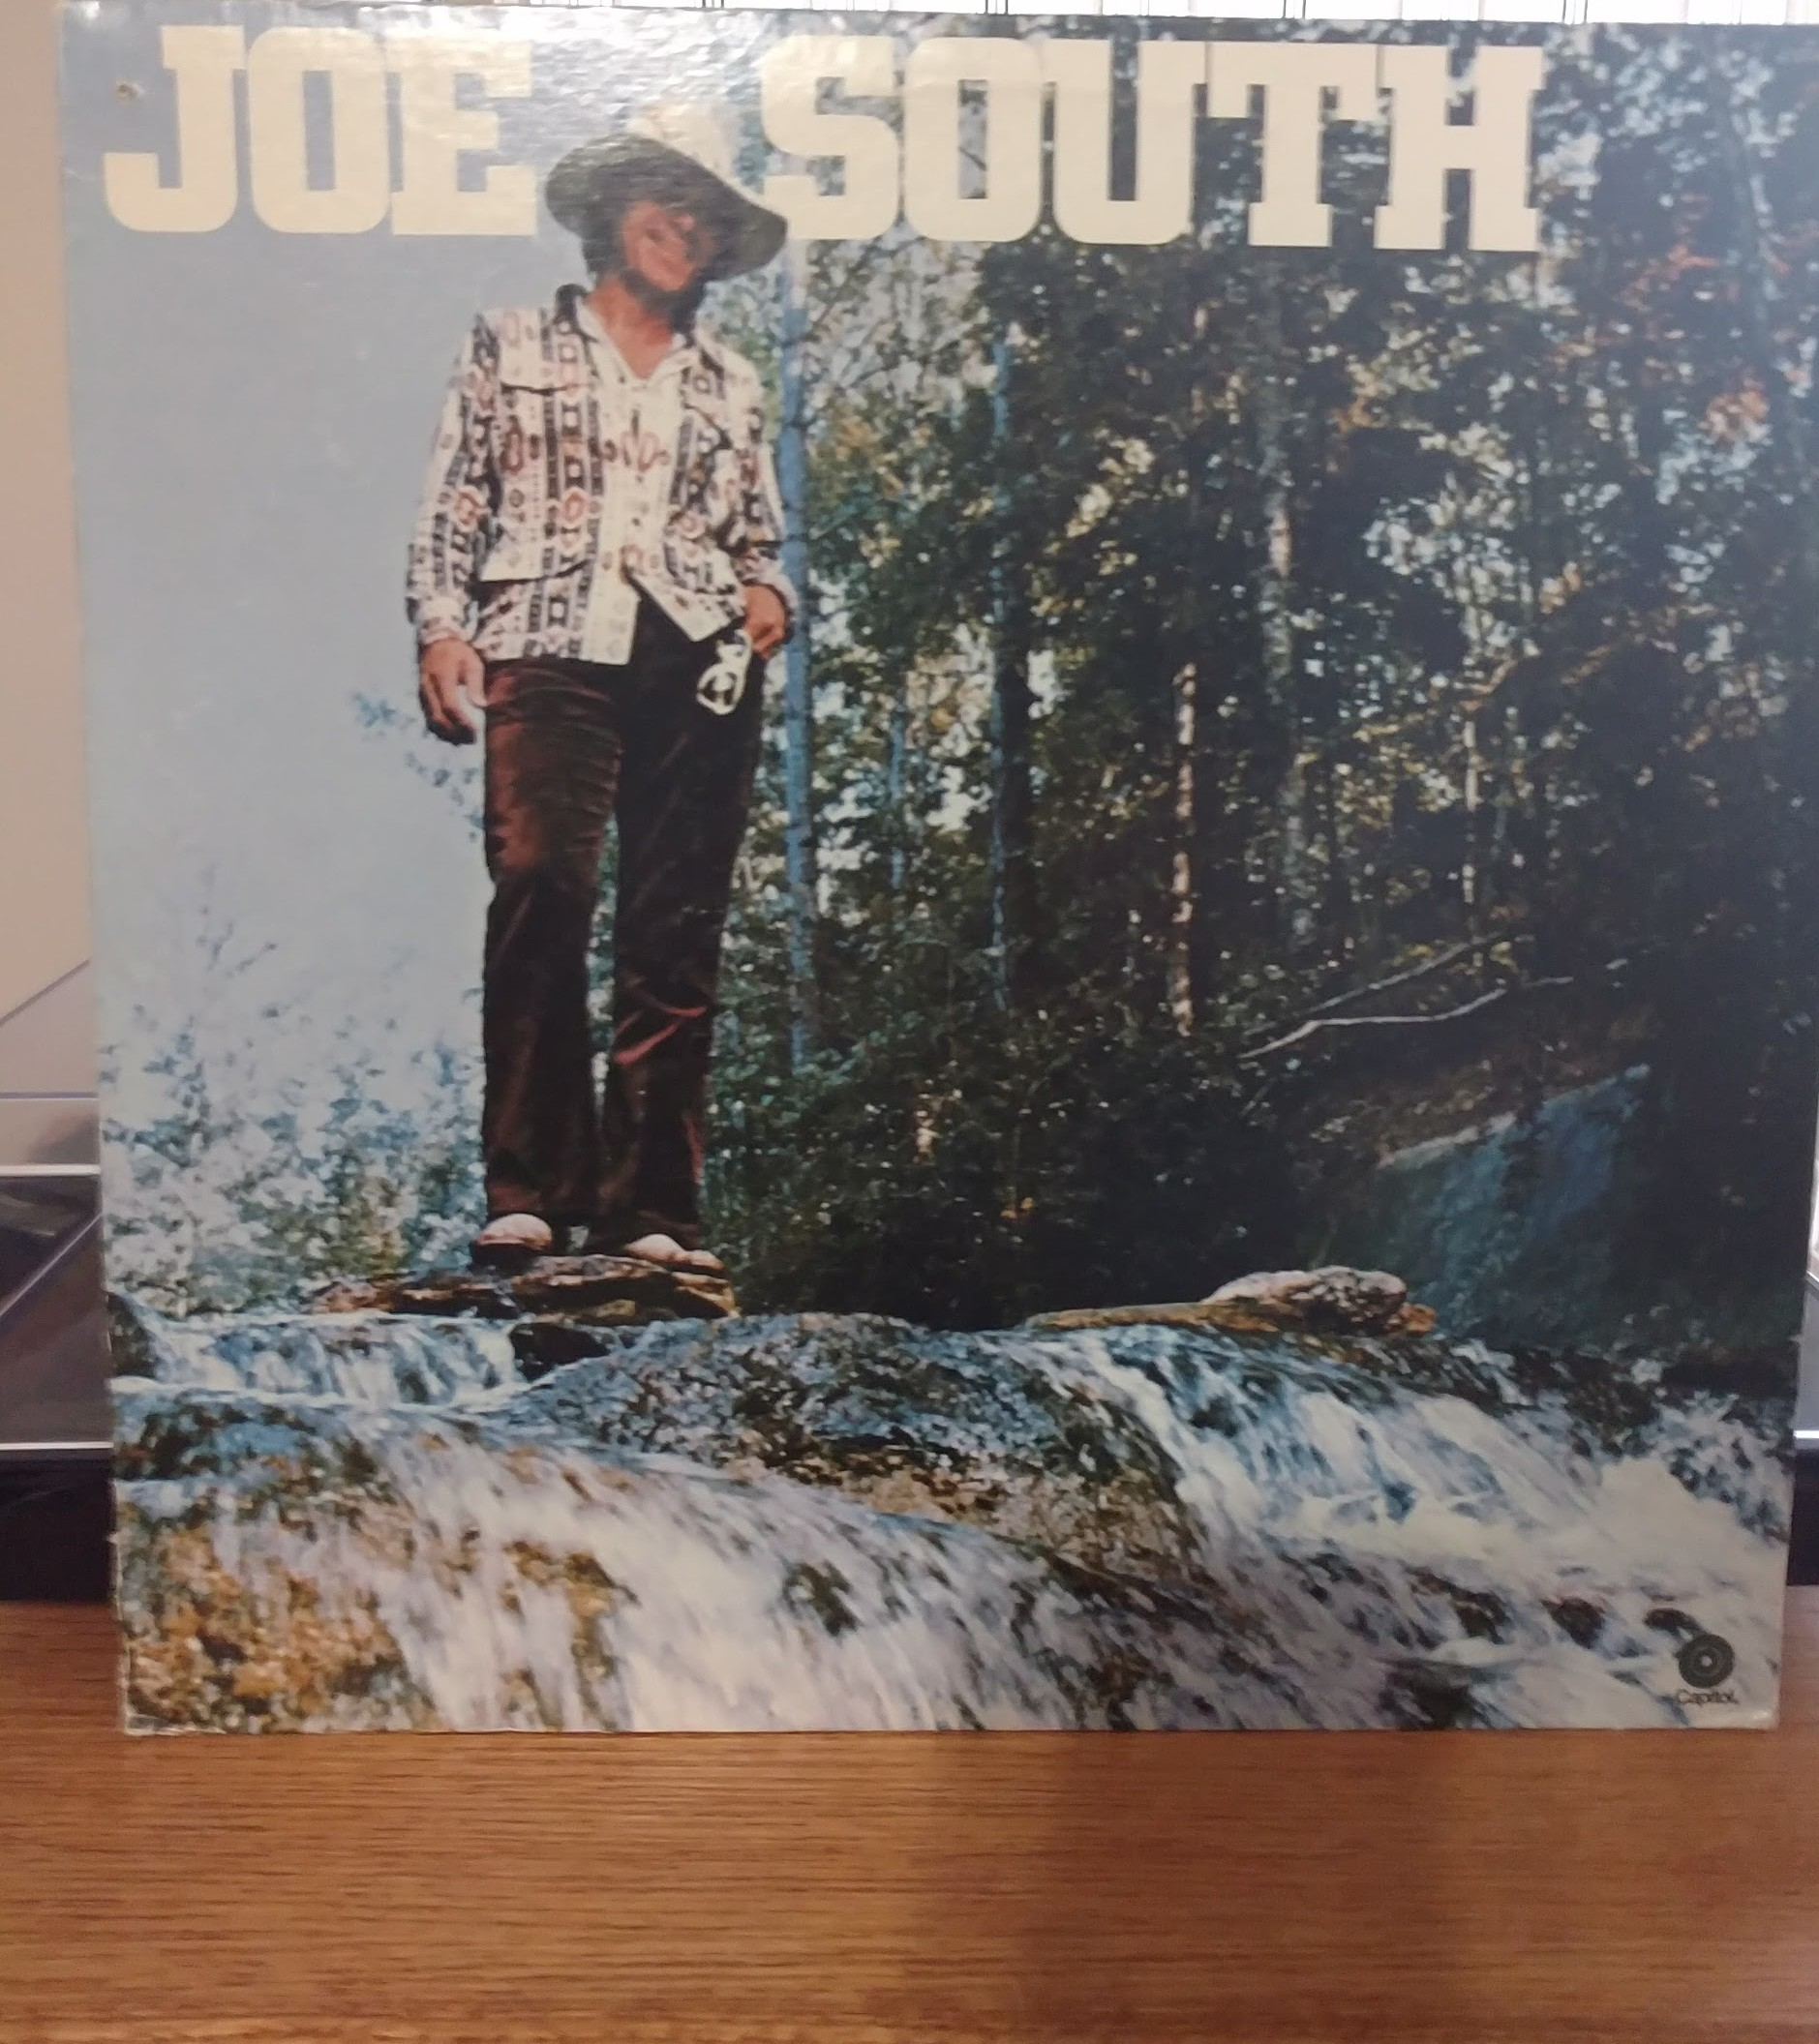 The front of the Joe South cover